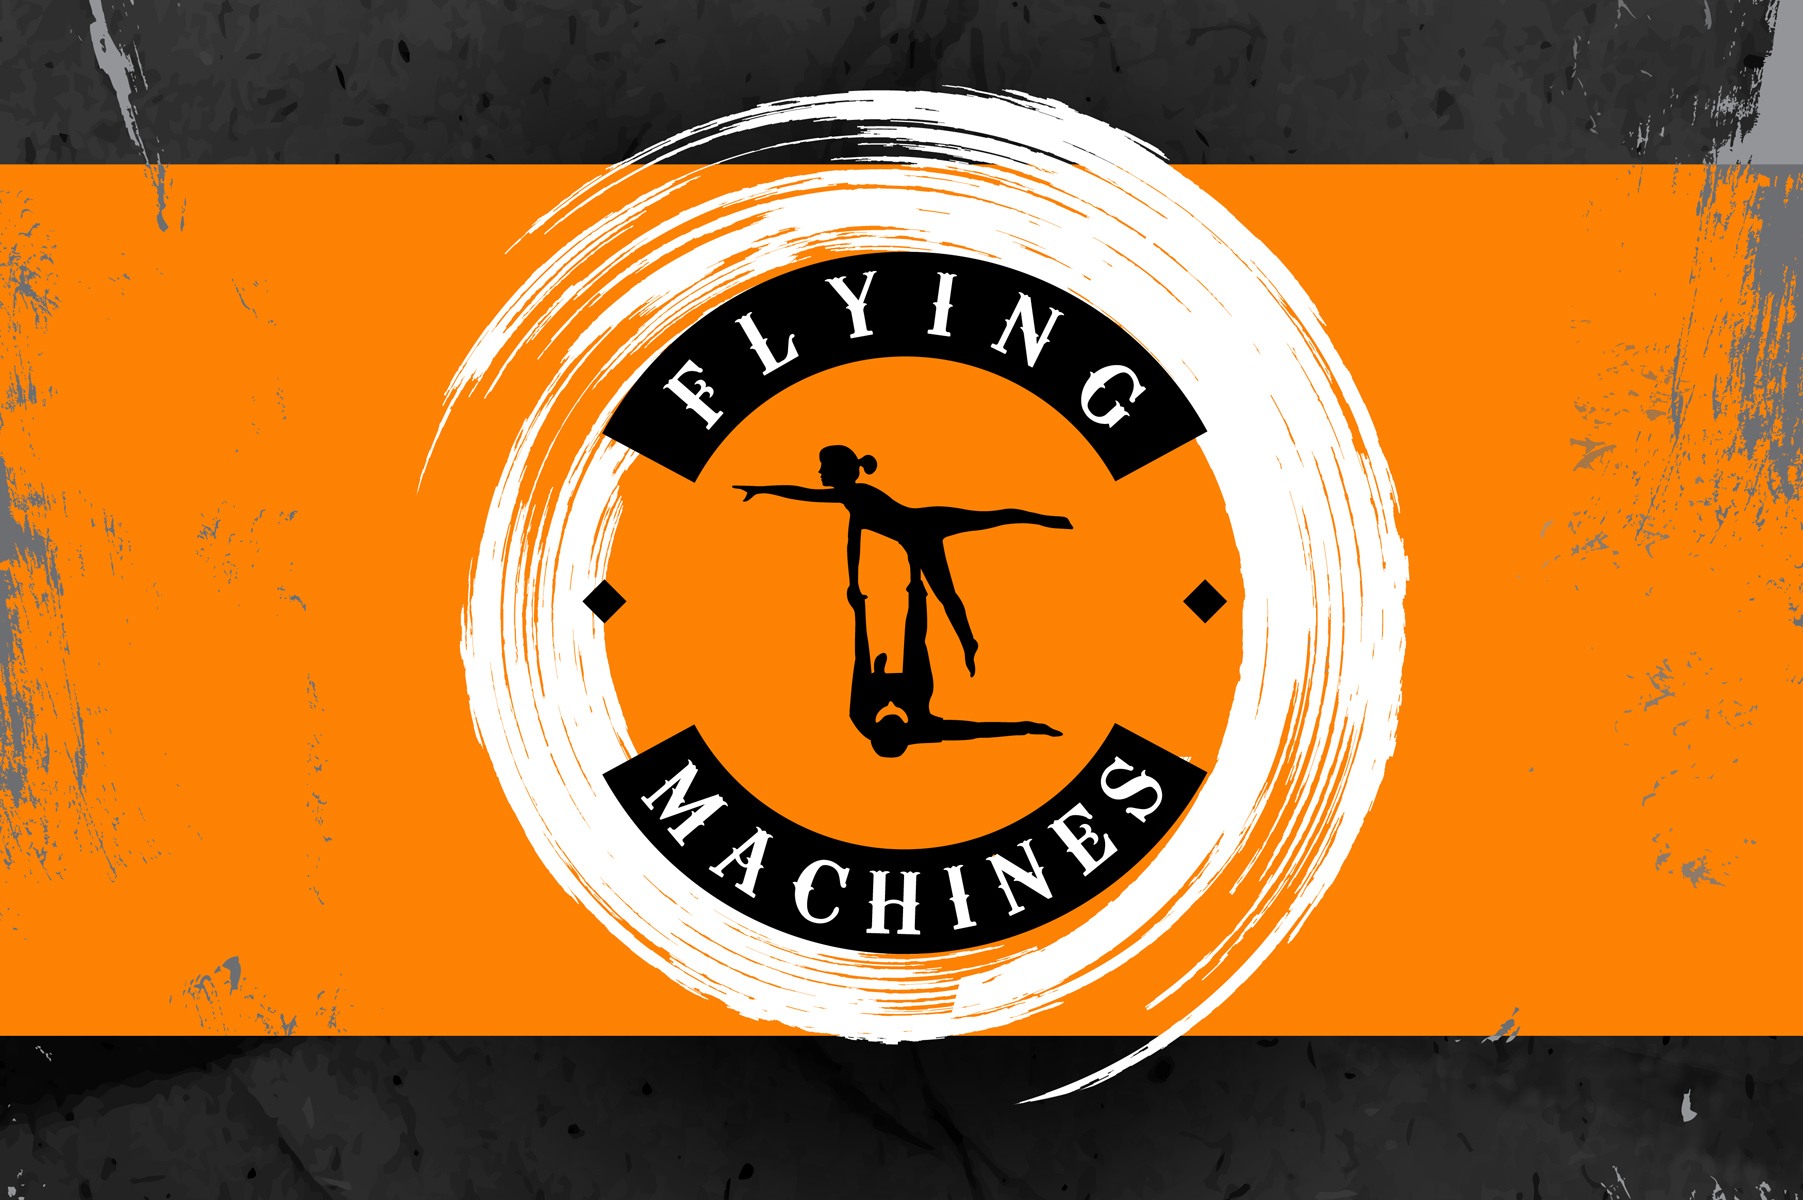 Flying-Machines